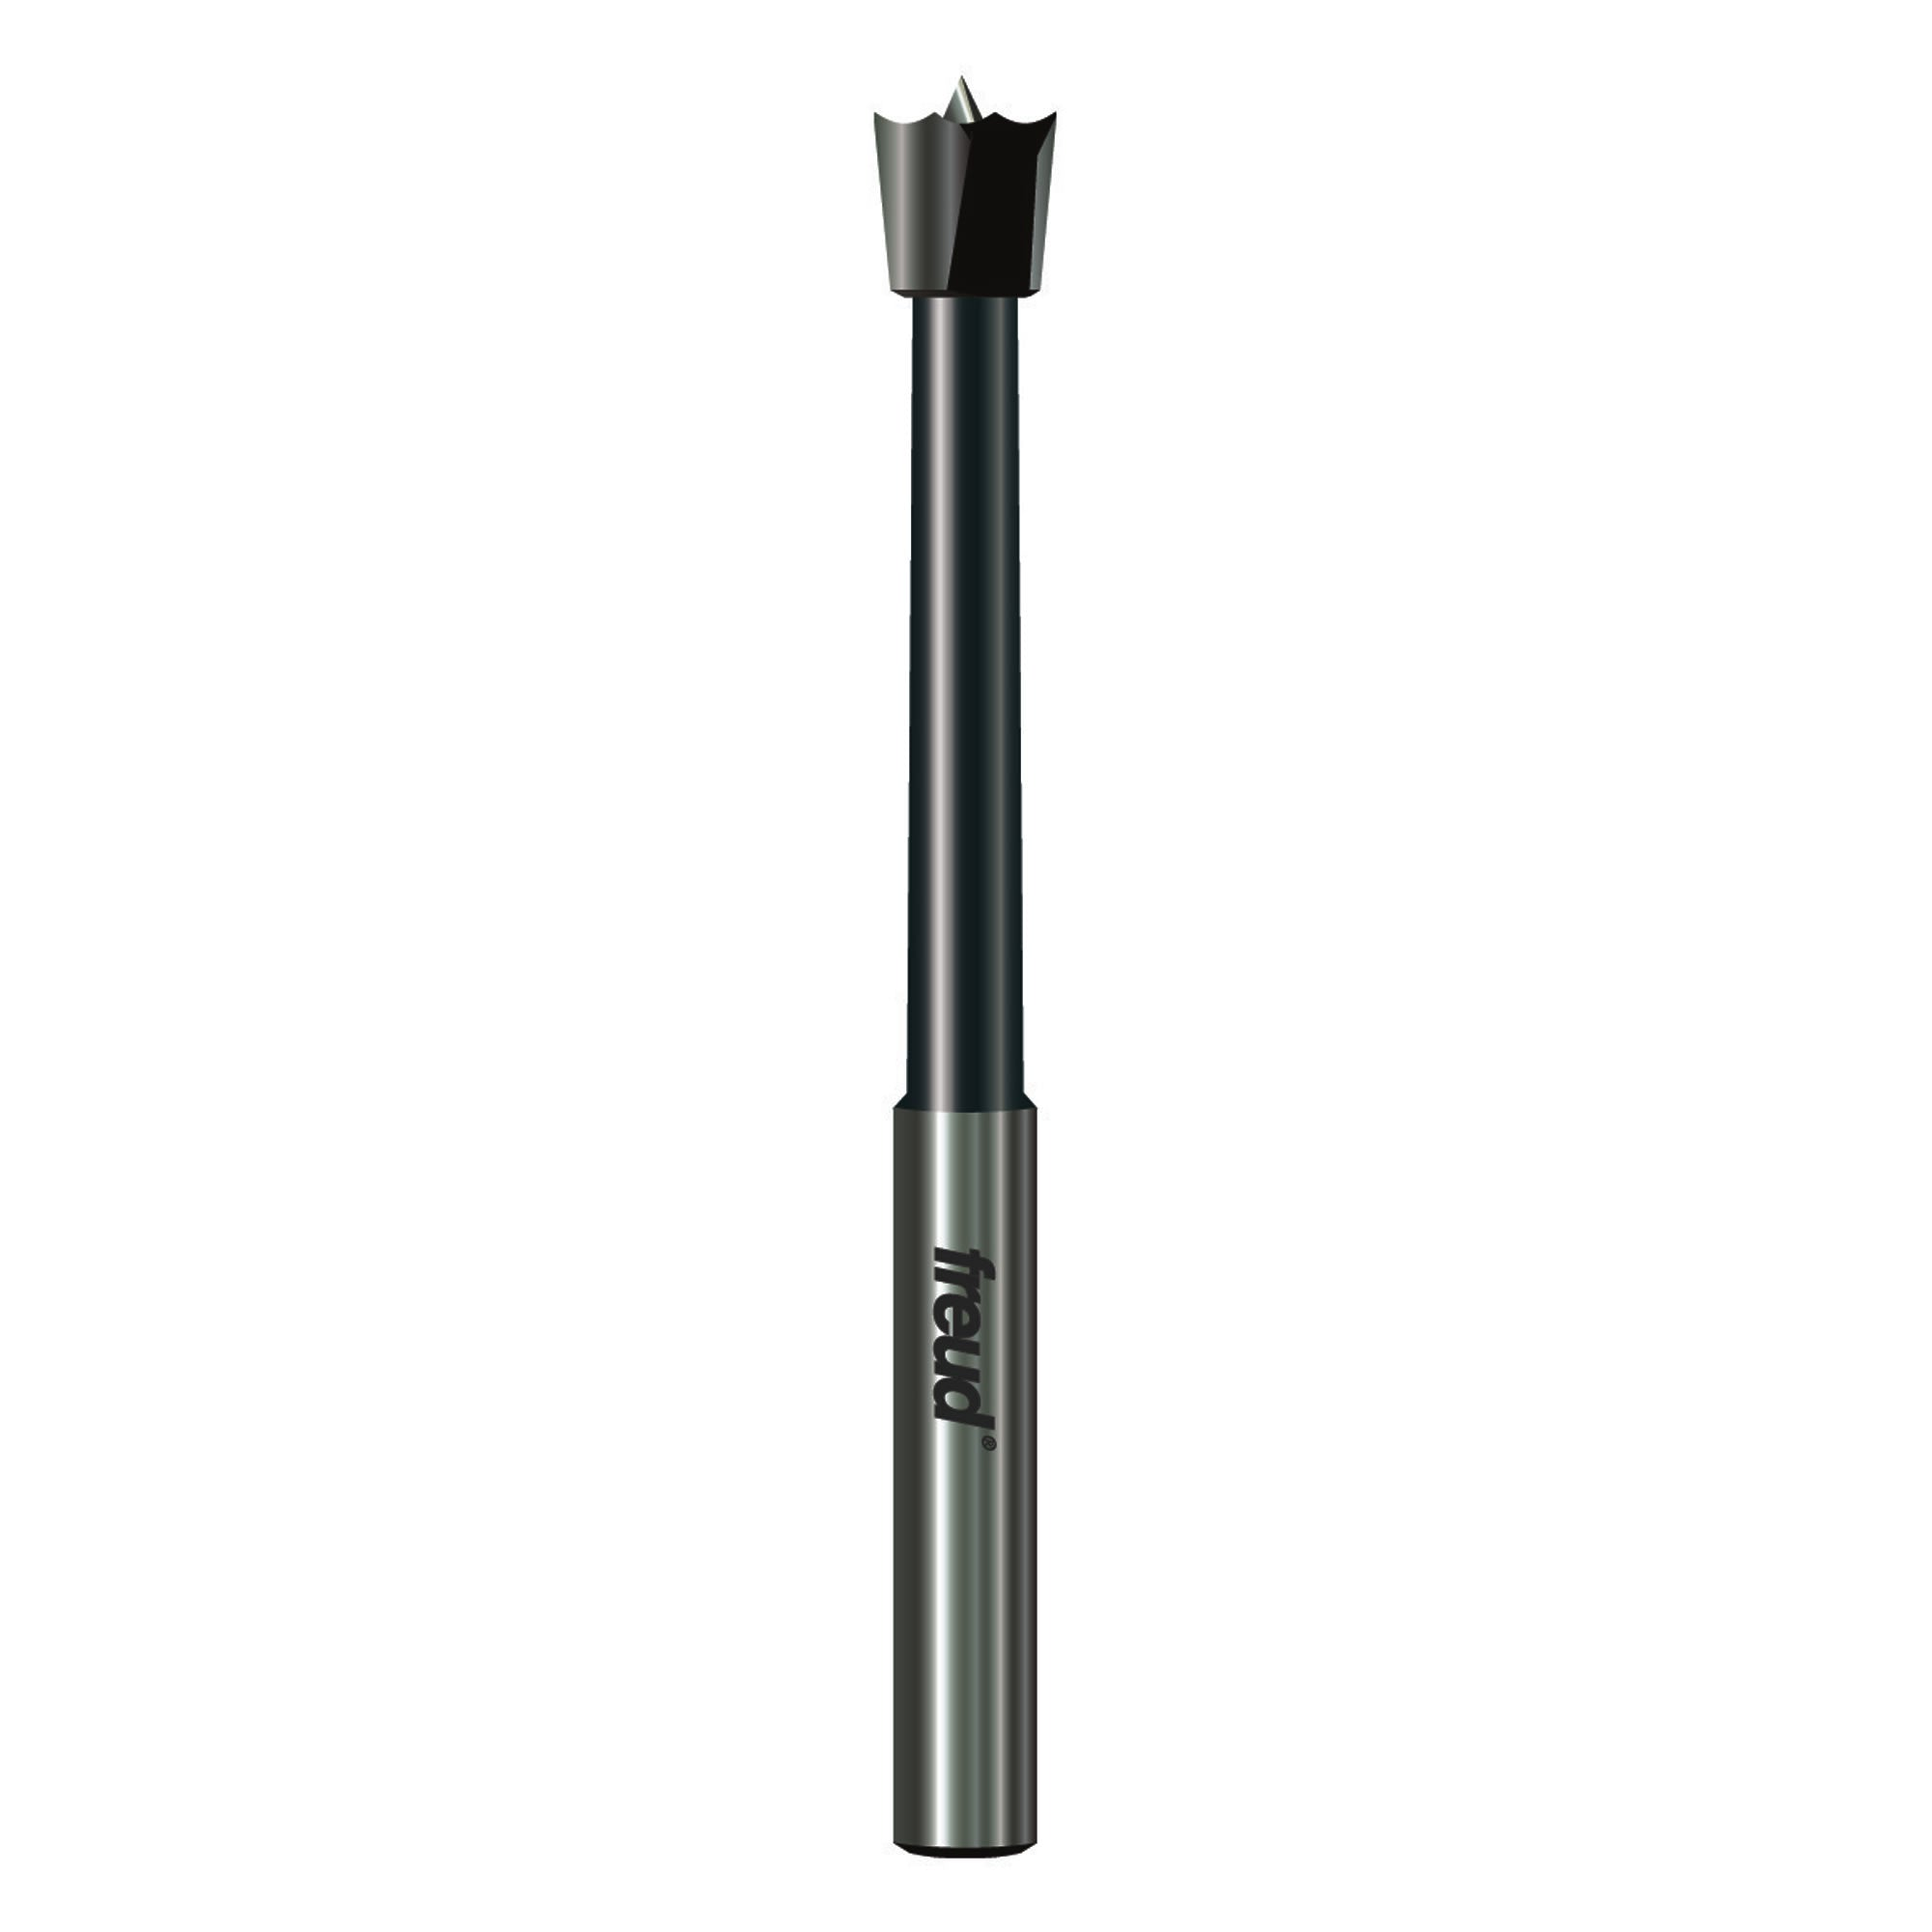 Freud PB-001 Precision Shearª Serrated Edge Forstner Drill Bit 1/4-Inch by 1/4-Inch Shank